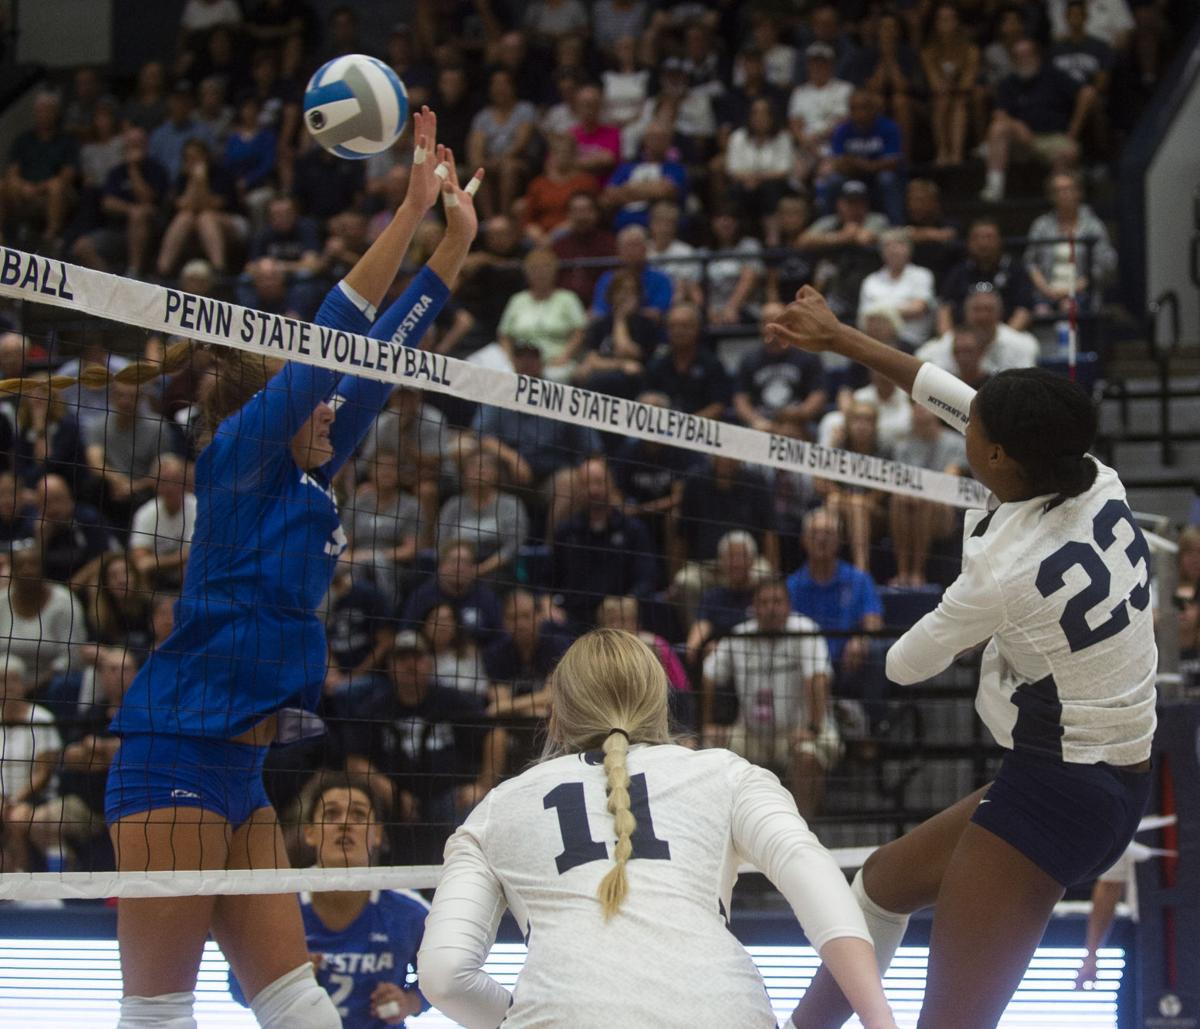 How Penn State Women S Volleyball Continues The Culture Penn State Volleyball News Daily Collegian Collegian Psu Edu